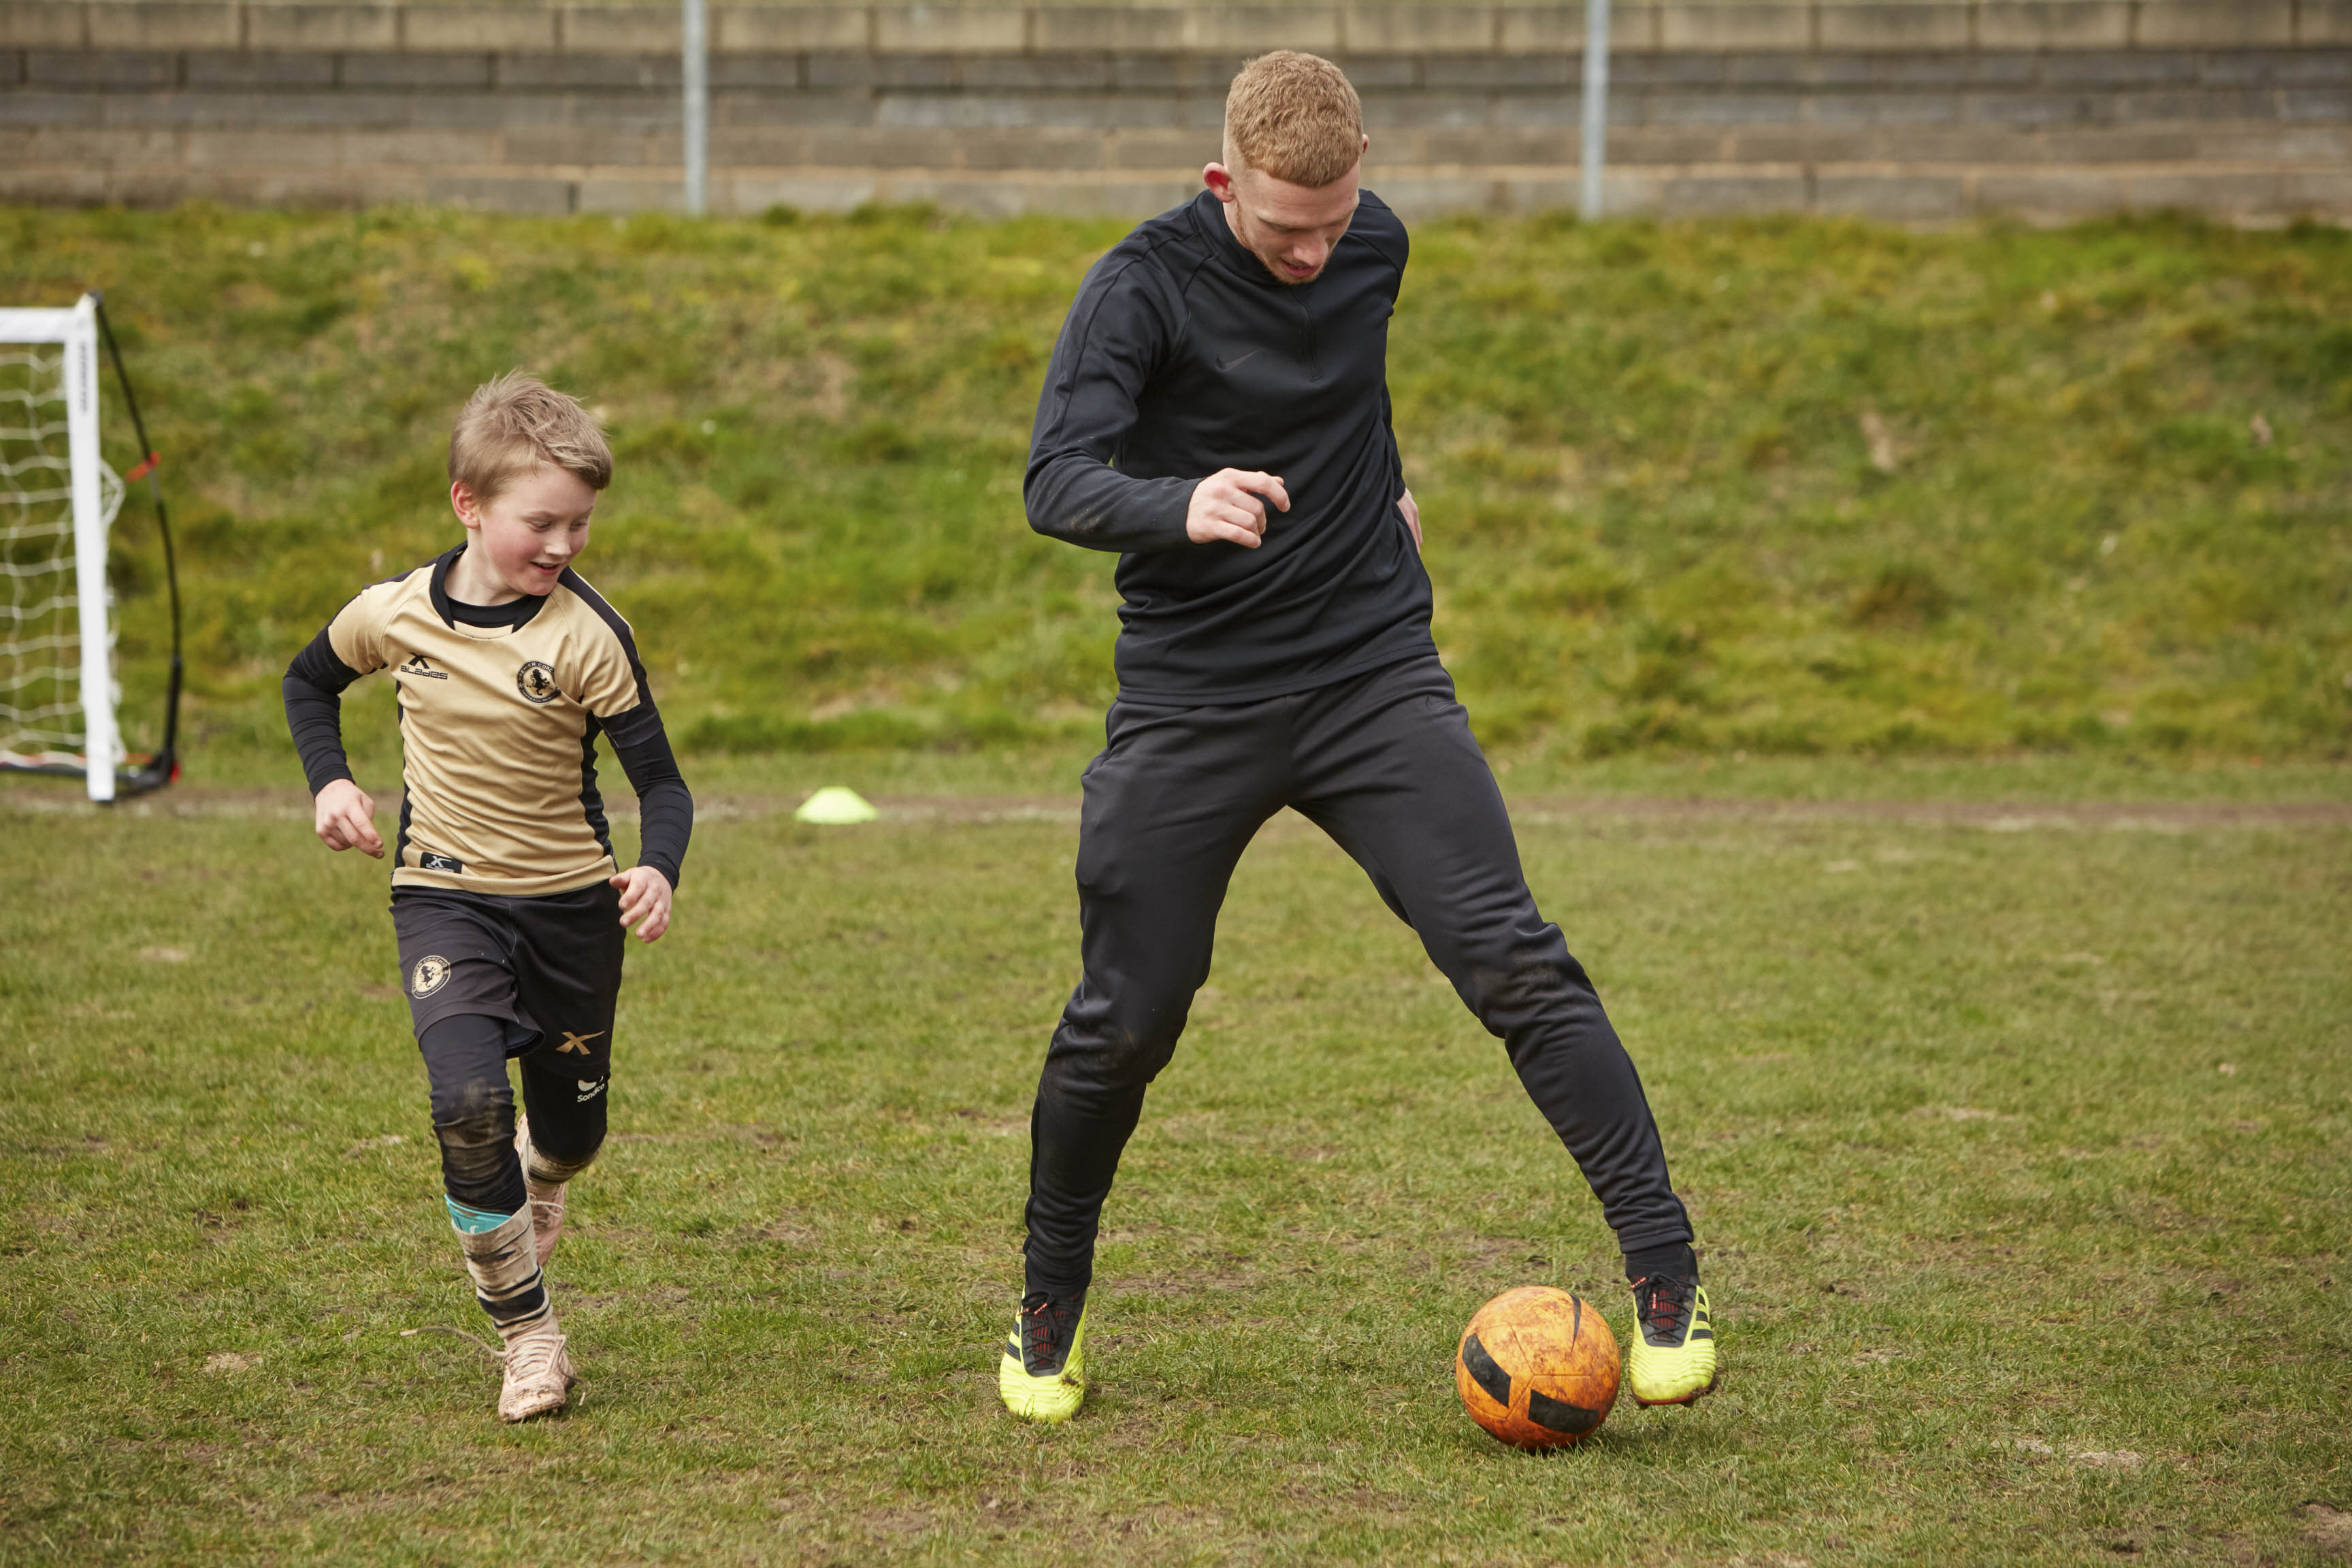 One to one training at PSC Football Academy